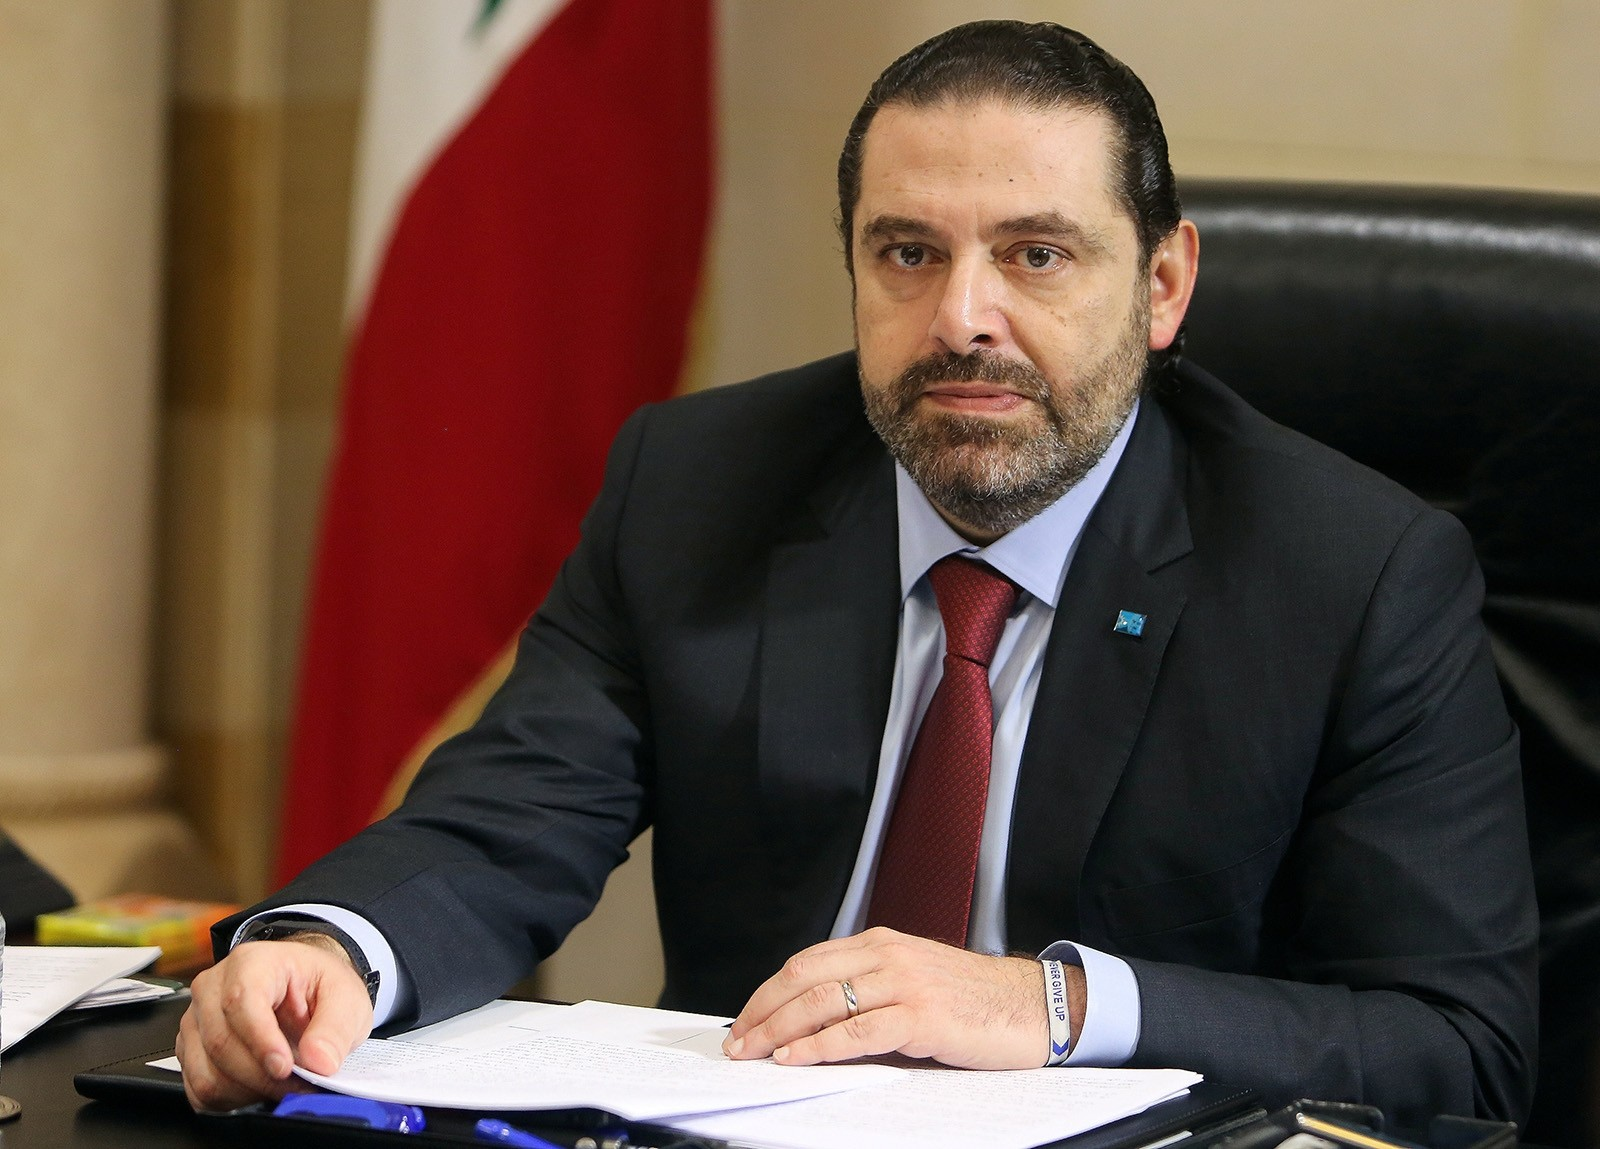 Lebanese Prime Minister Saad al-HarirI is seen during the meeting to discuss a draft policy statement at the governmental palace in Beirut, Lebanon Feb. 6, 2019. (Reuters Photo)